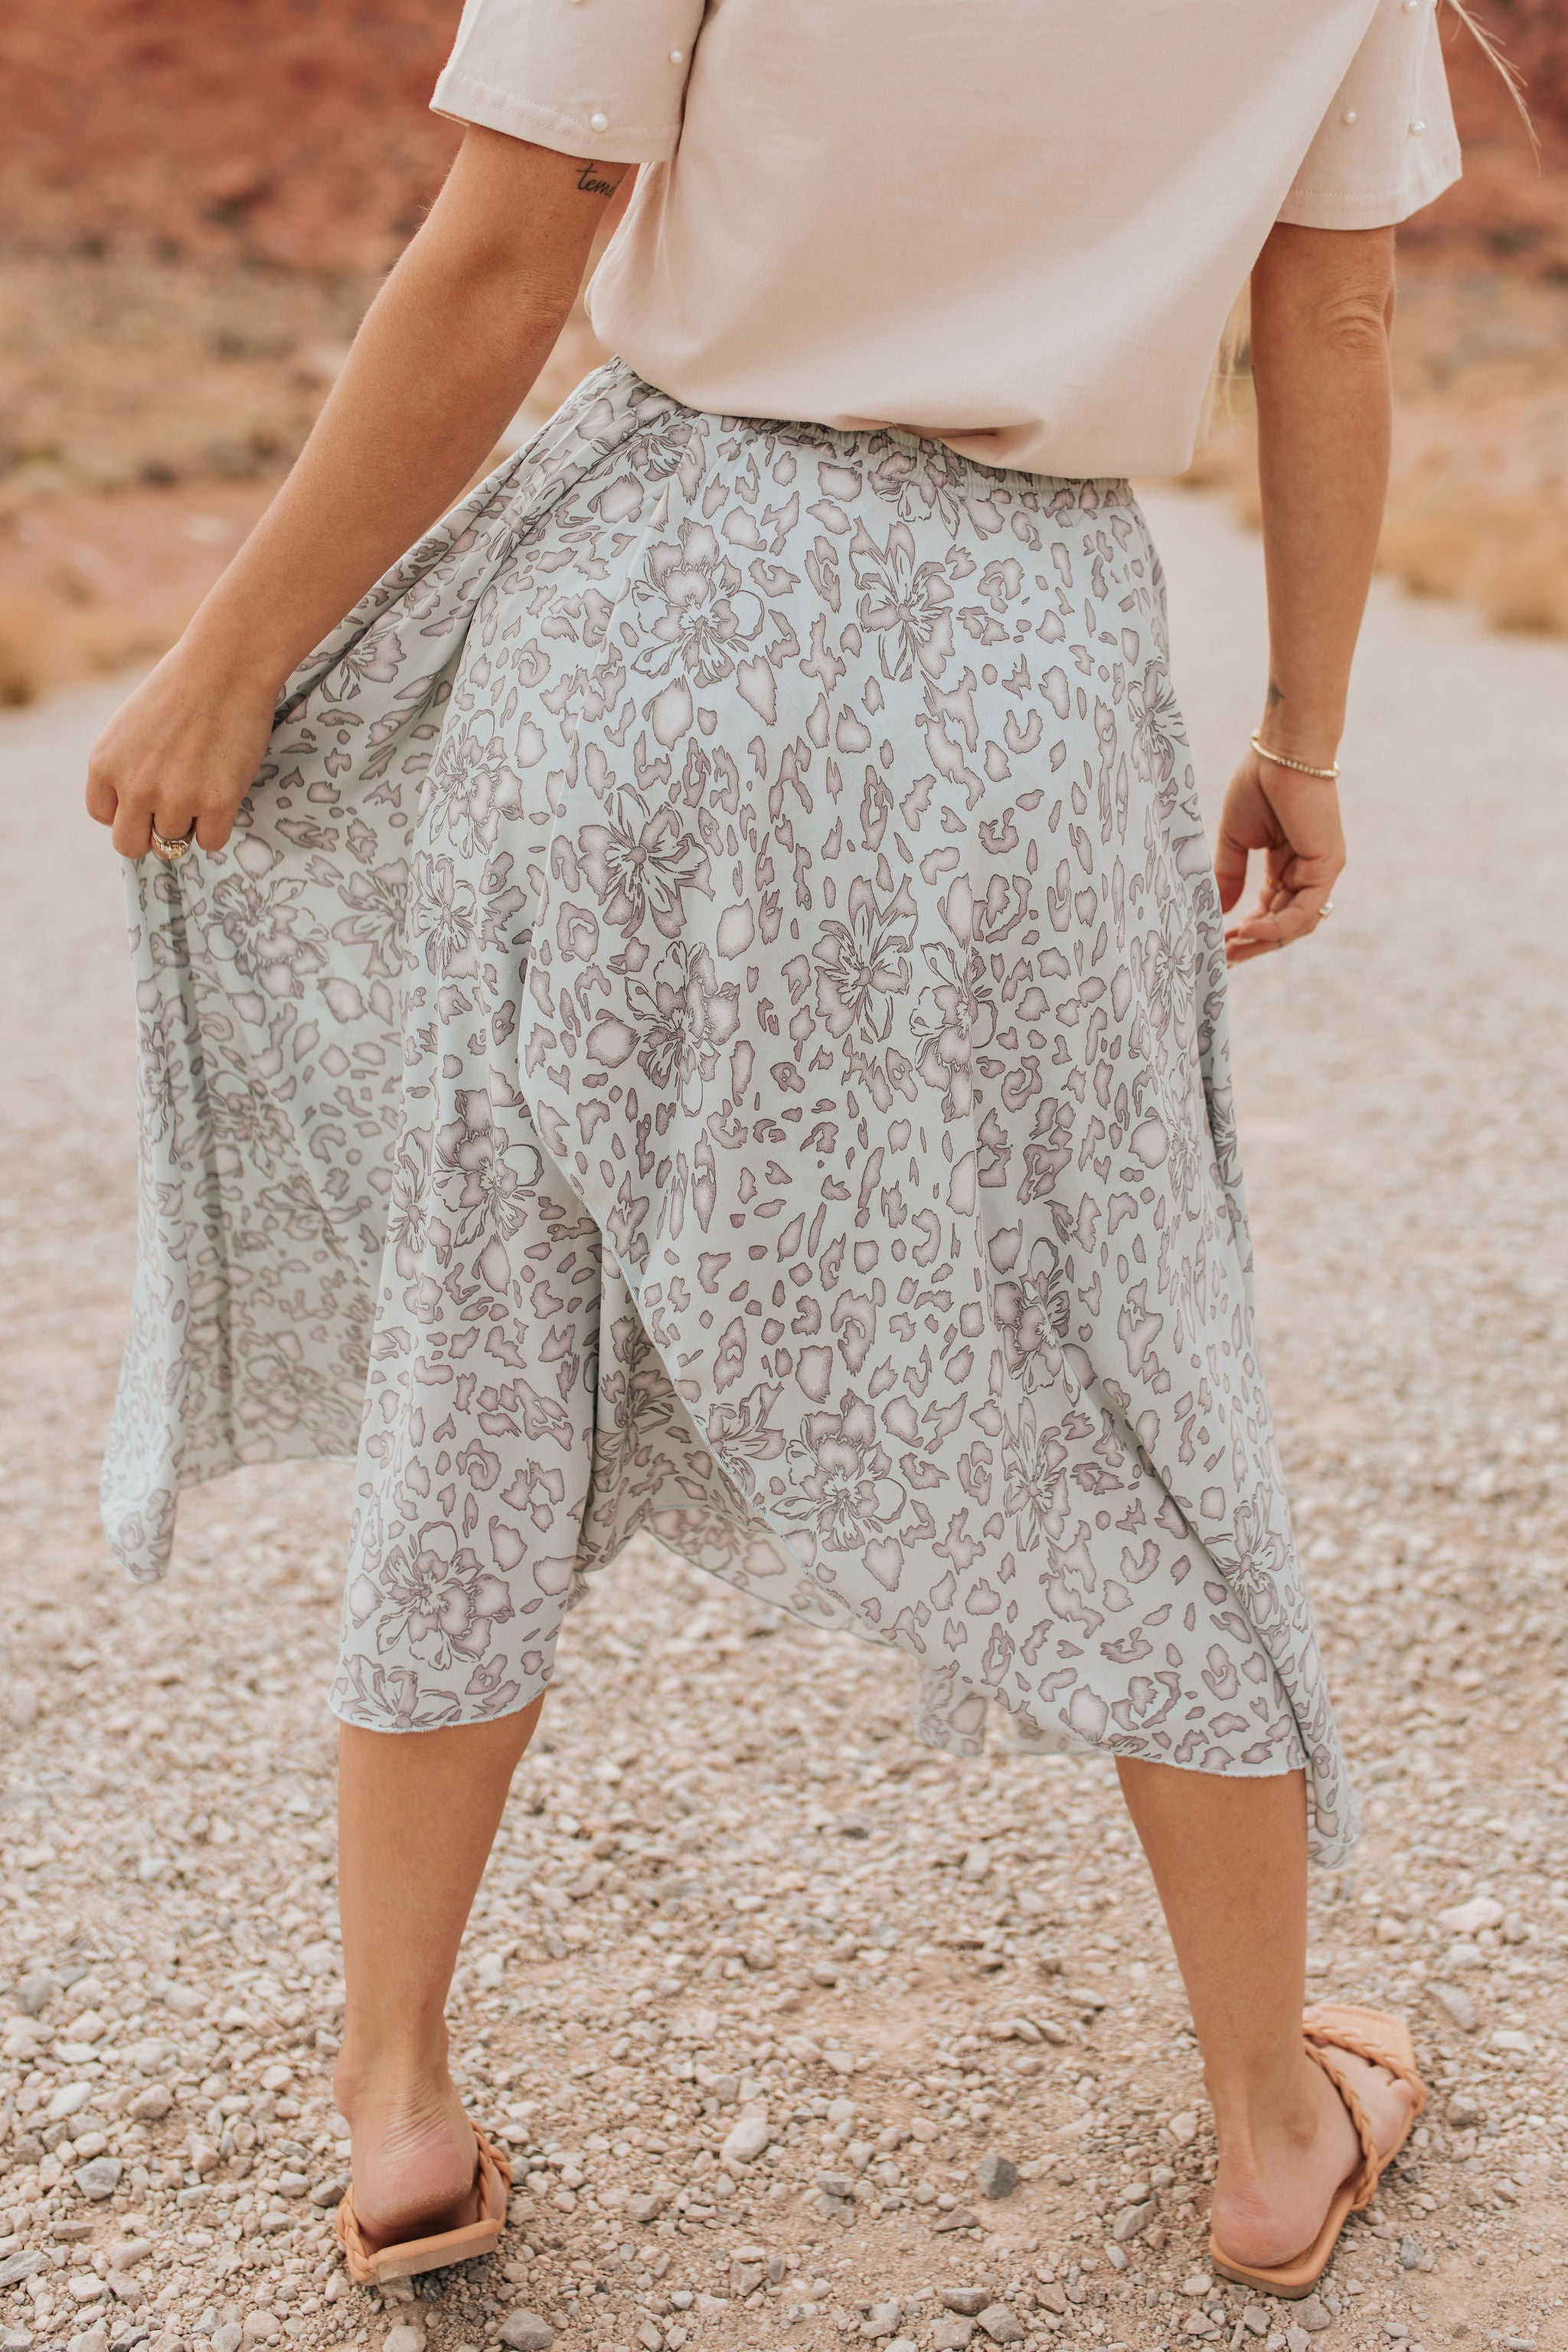 THE LILO LEOPARD FLORAL WRAP SKIRT IN LIGHT BLUE